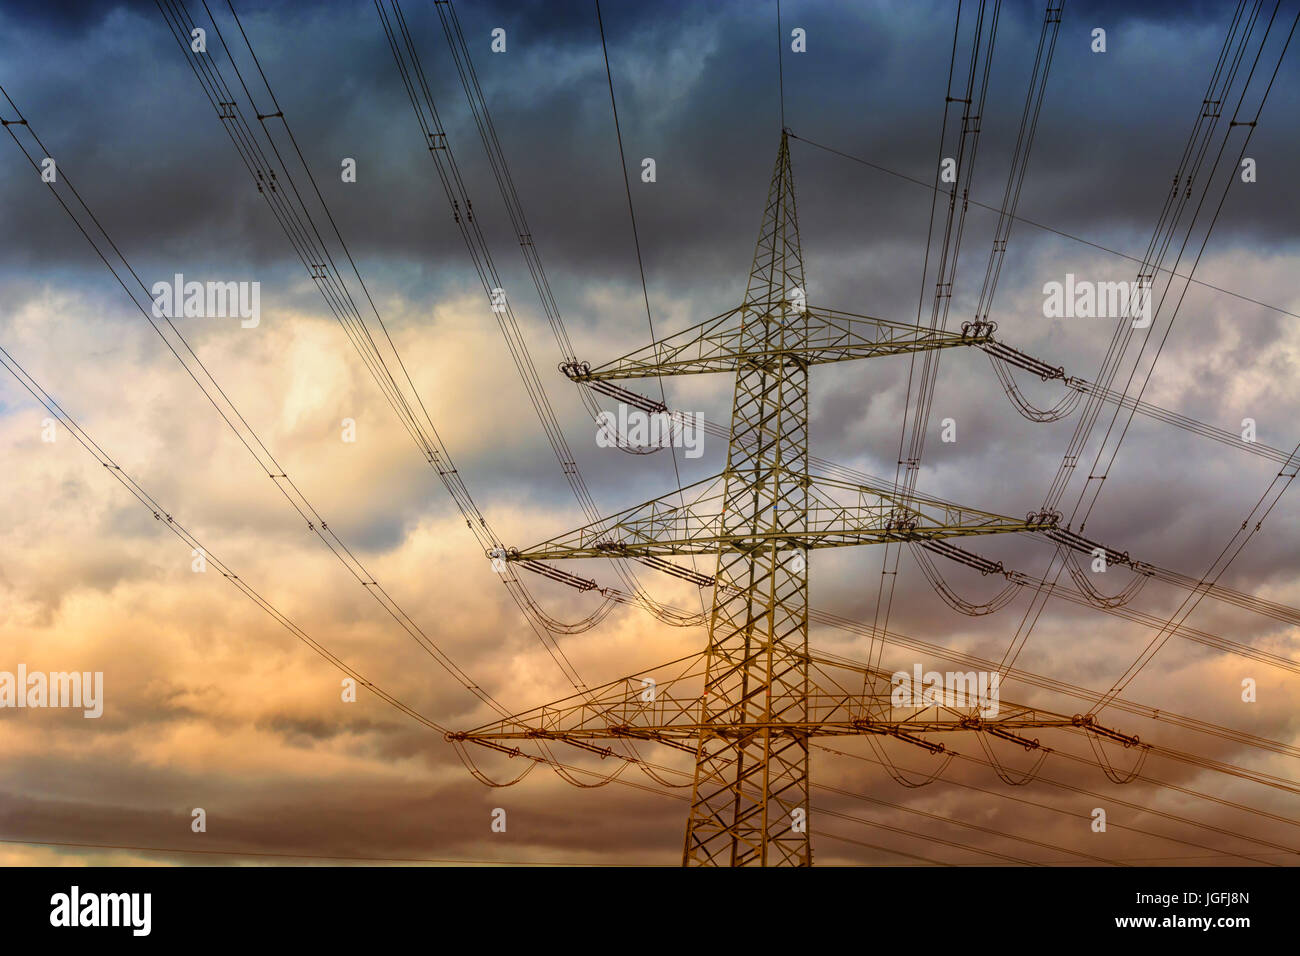 Electricity mast or also high voltage line in the background a cloudy sky. - Stock Image